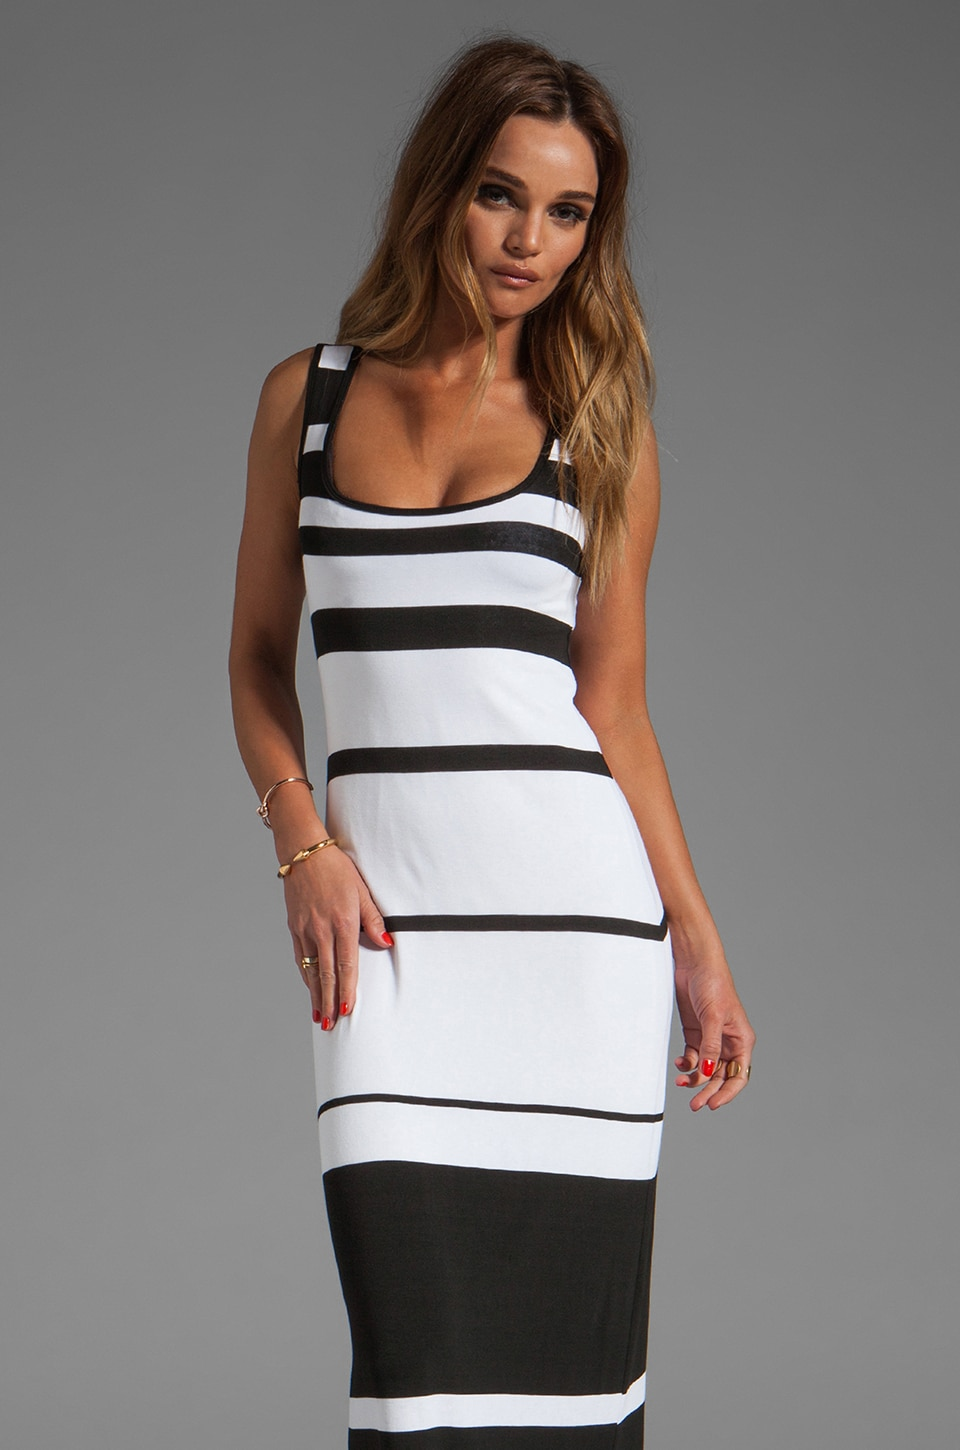 Bailey 44 Co-Driver Dress in Black/White